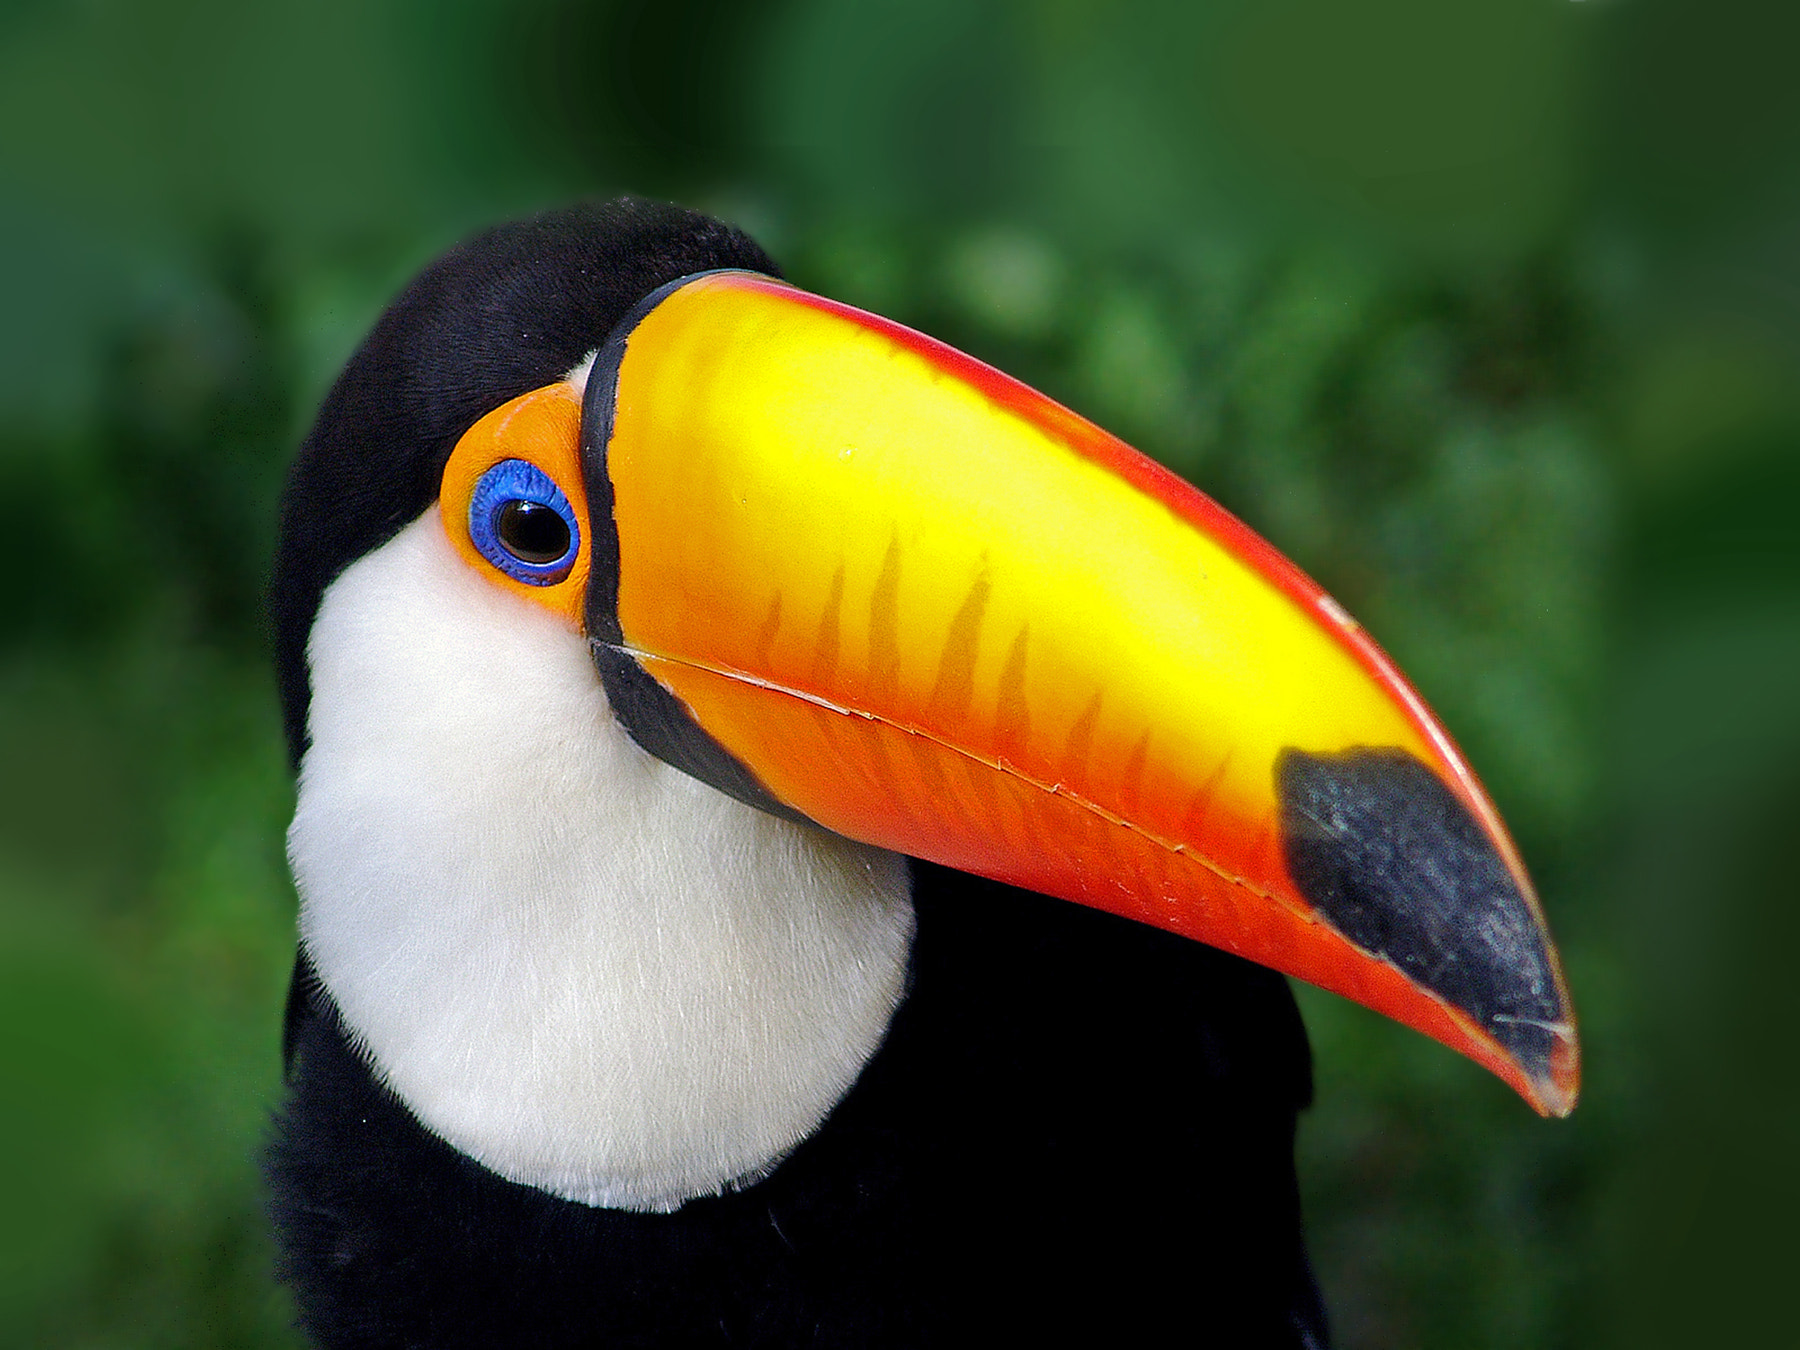 Photograph tucanuçu (Ramphastos toco) Toco Toucan by Claudio Lopes on 500px